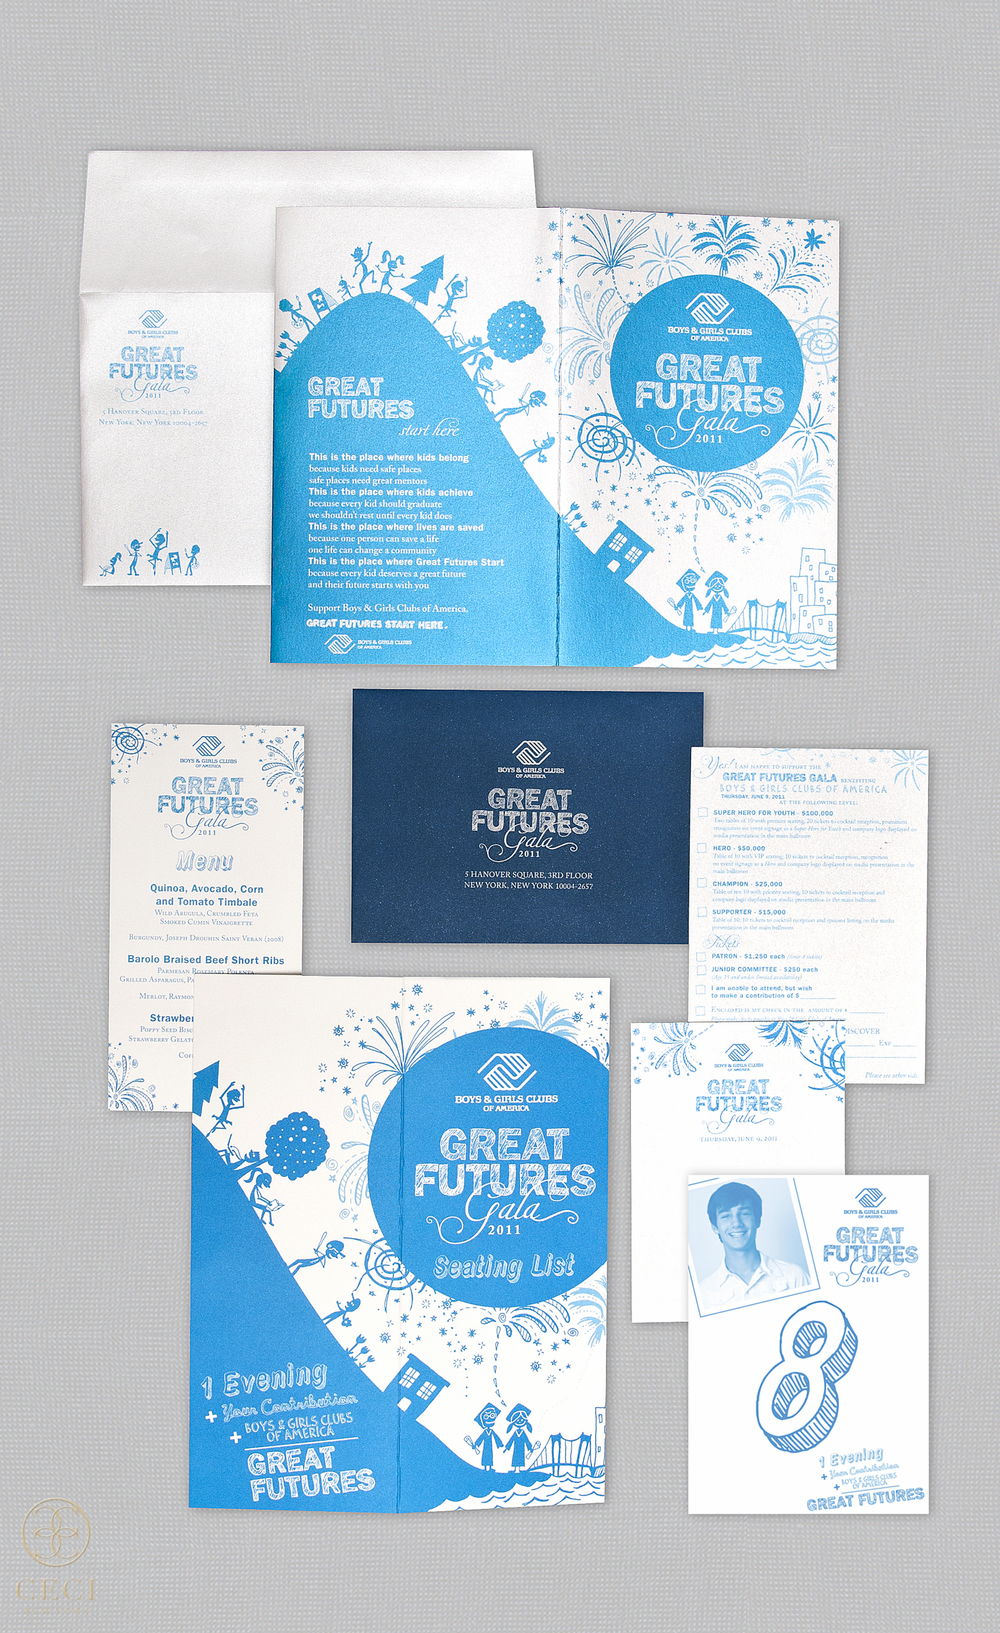 ceci-new-york-gives-back-boys-and-girls-club-of-america-great-futures-gala-2011-invitations-design-paper-accessories-signage-22.jpg